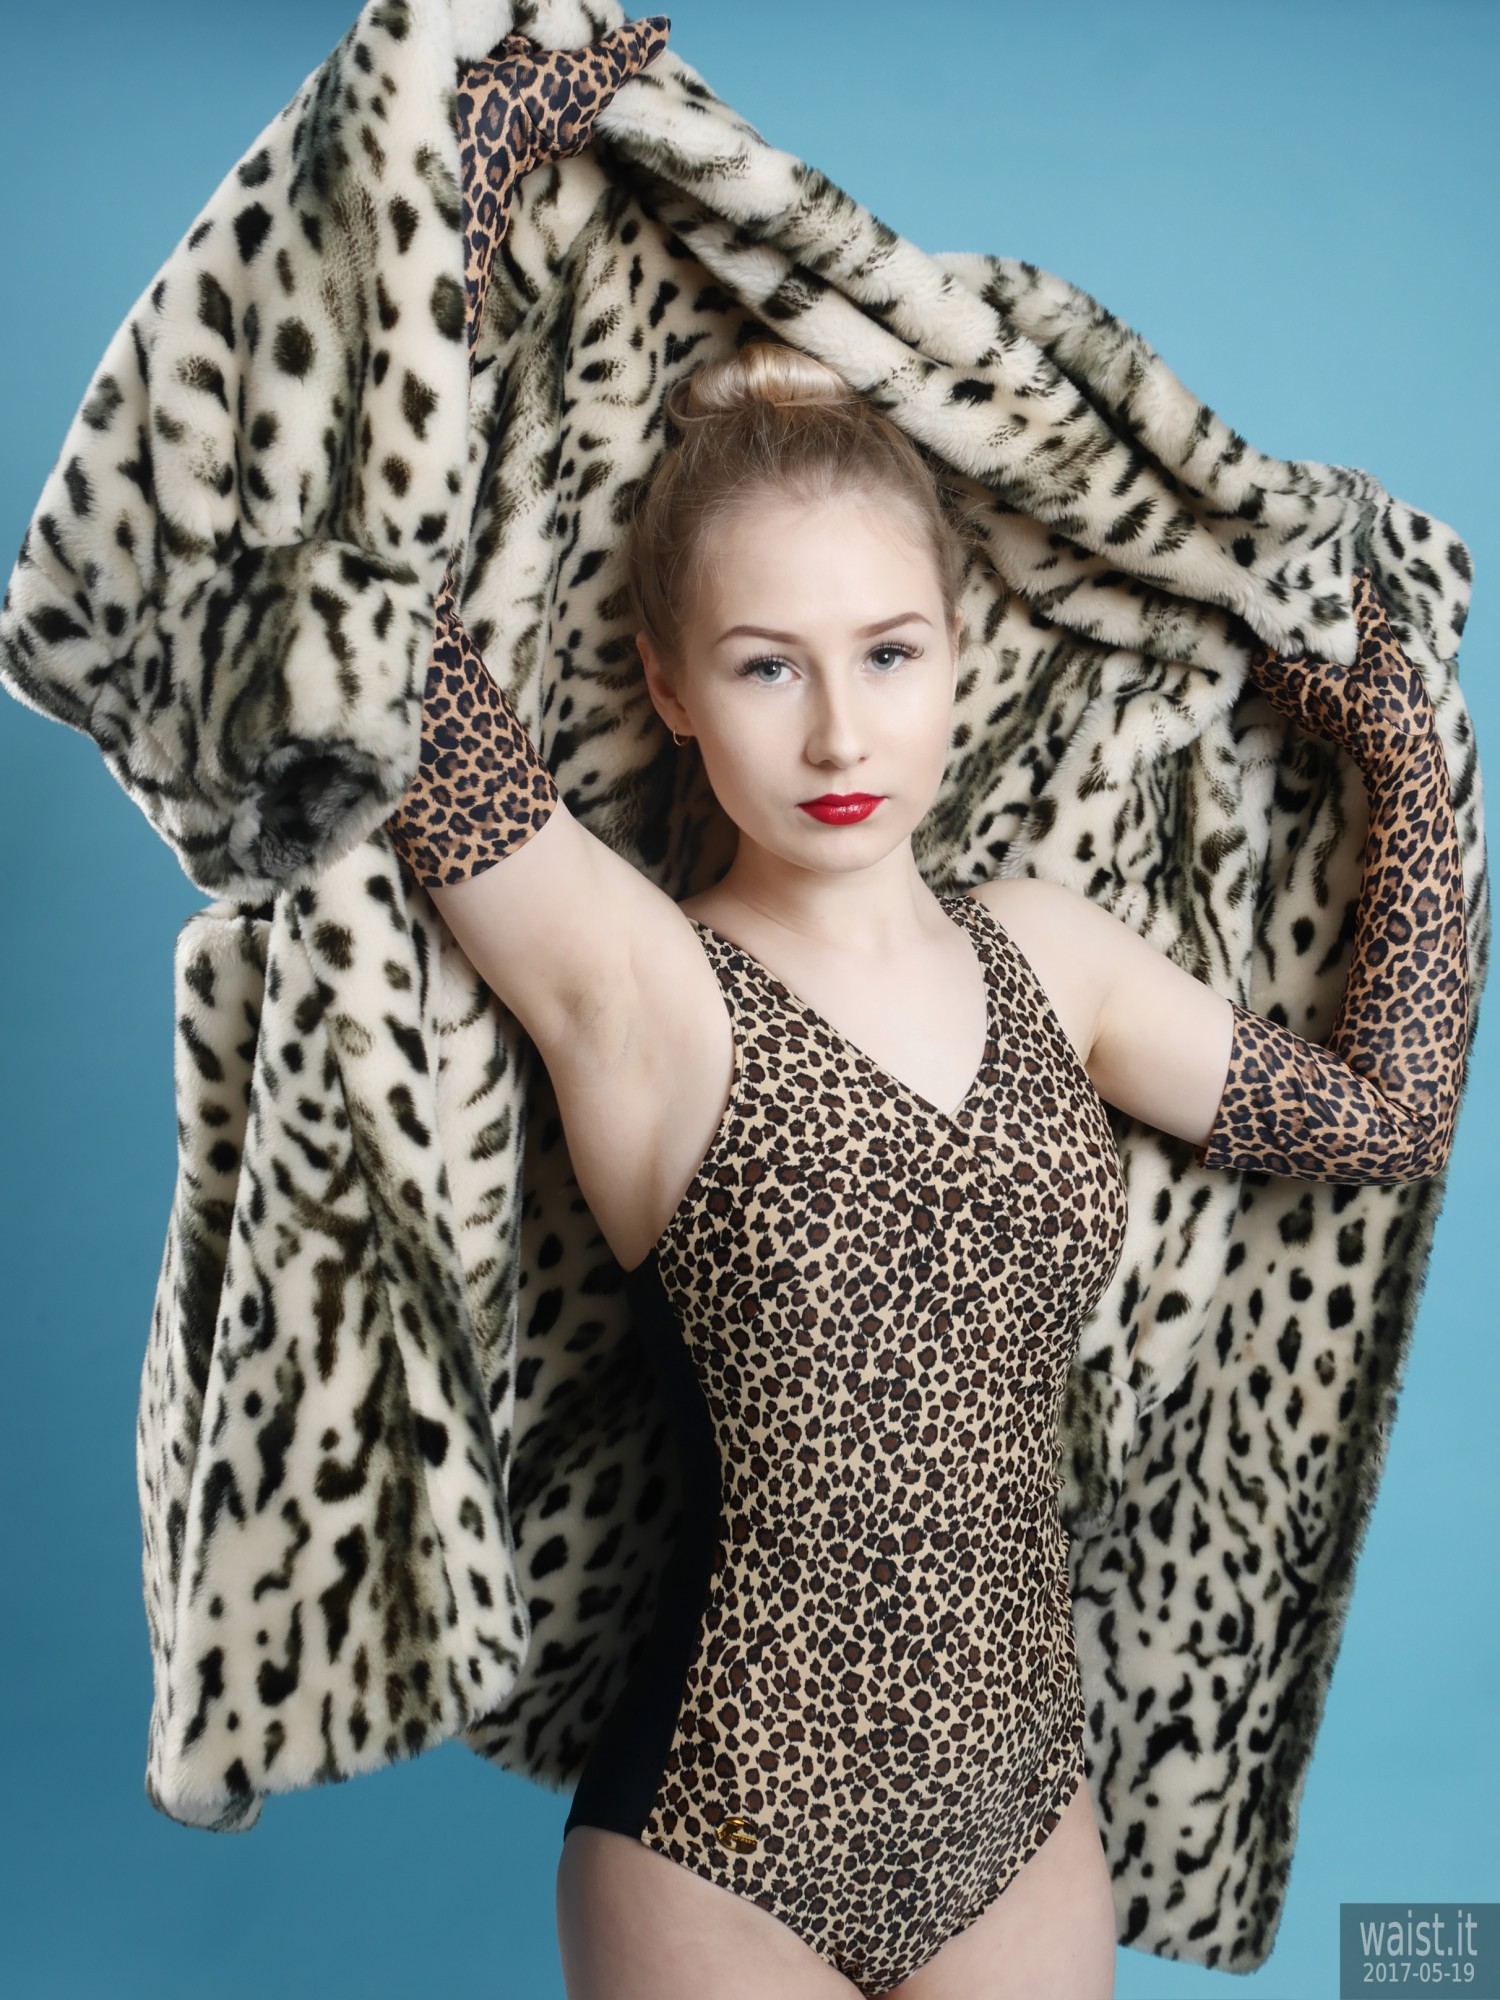 2017-05-19 Laura Sele in vintage style animal print tummy-control swimsuit and matching gloves